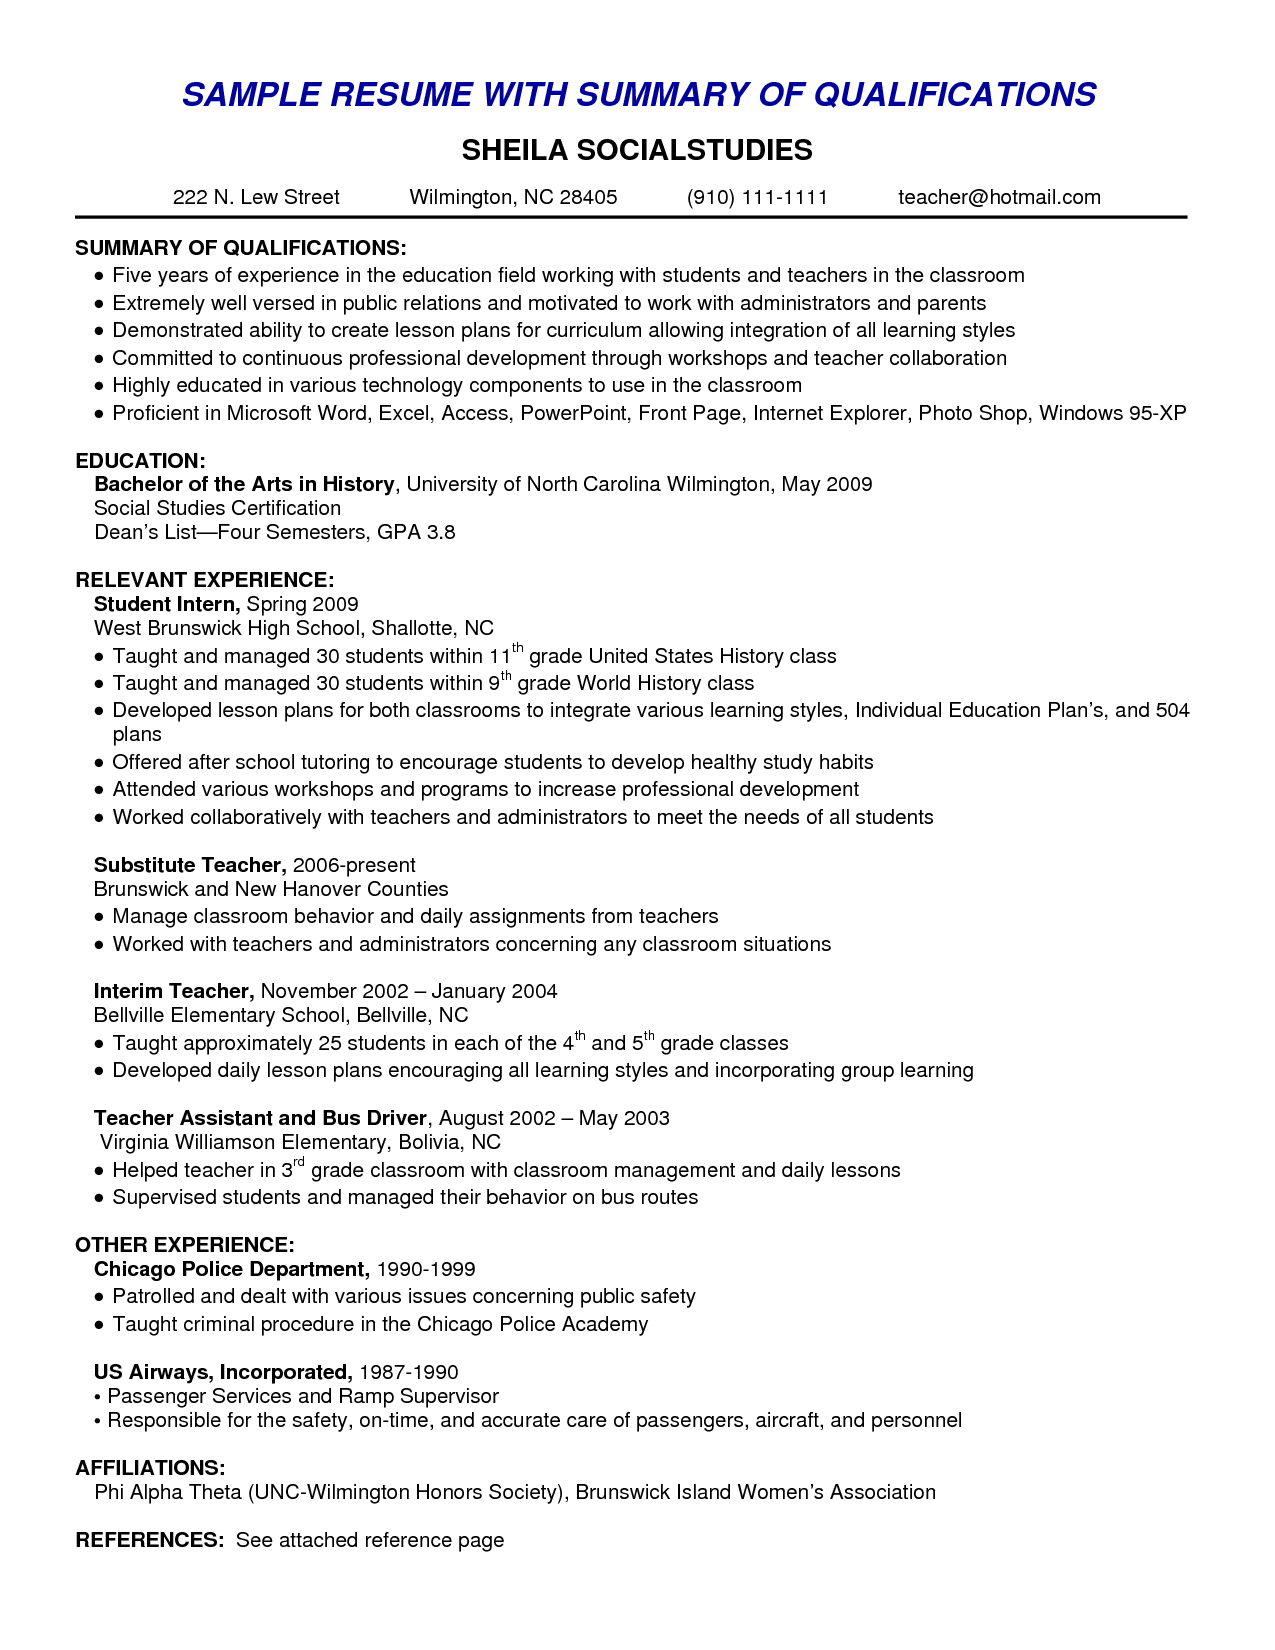 Summary For Resume Examples Free Download Interview Questions And